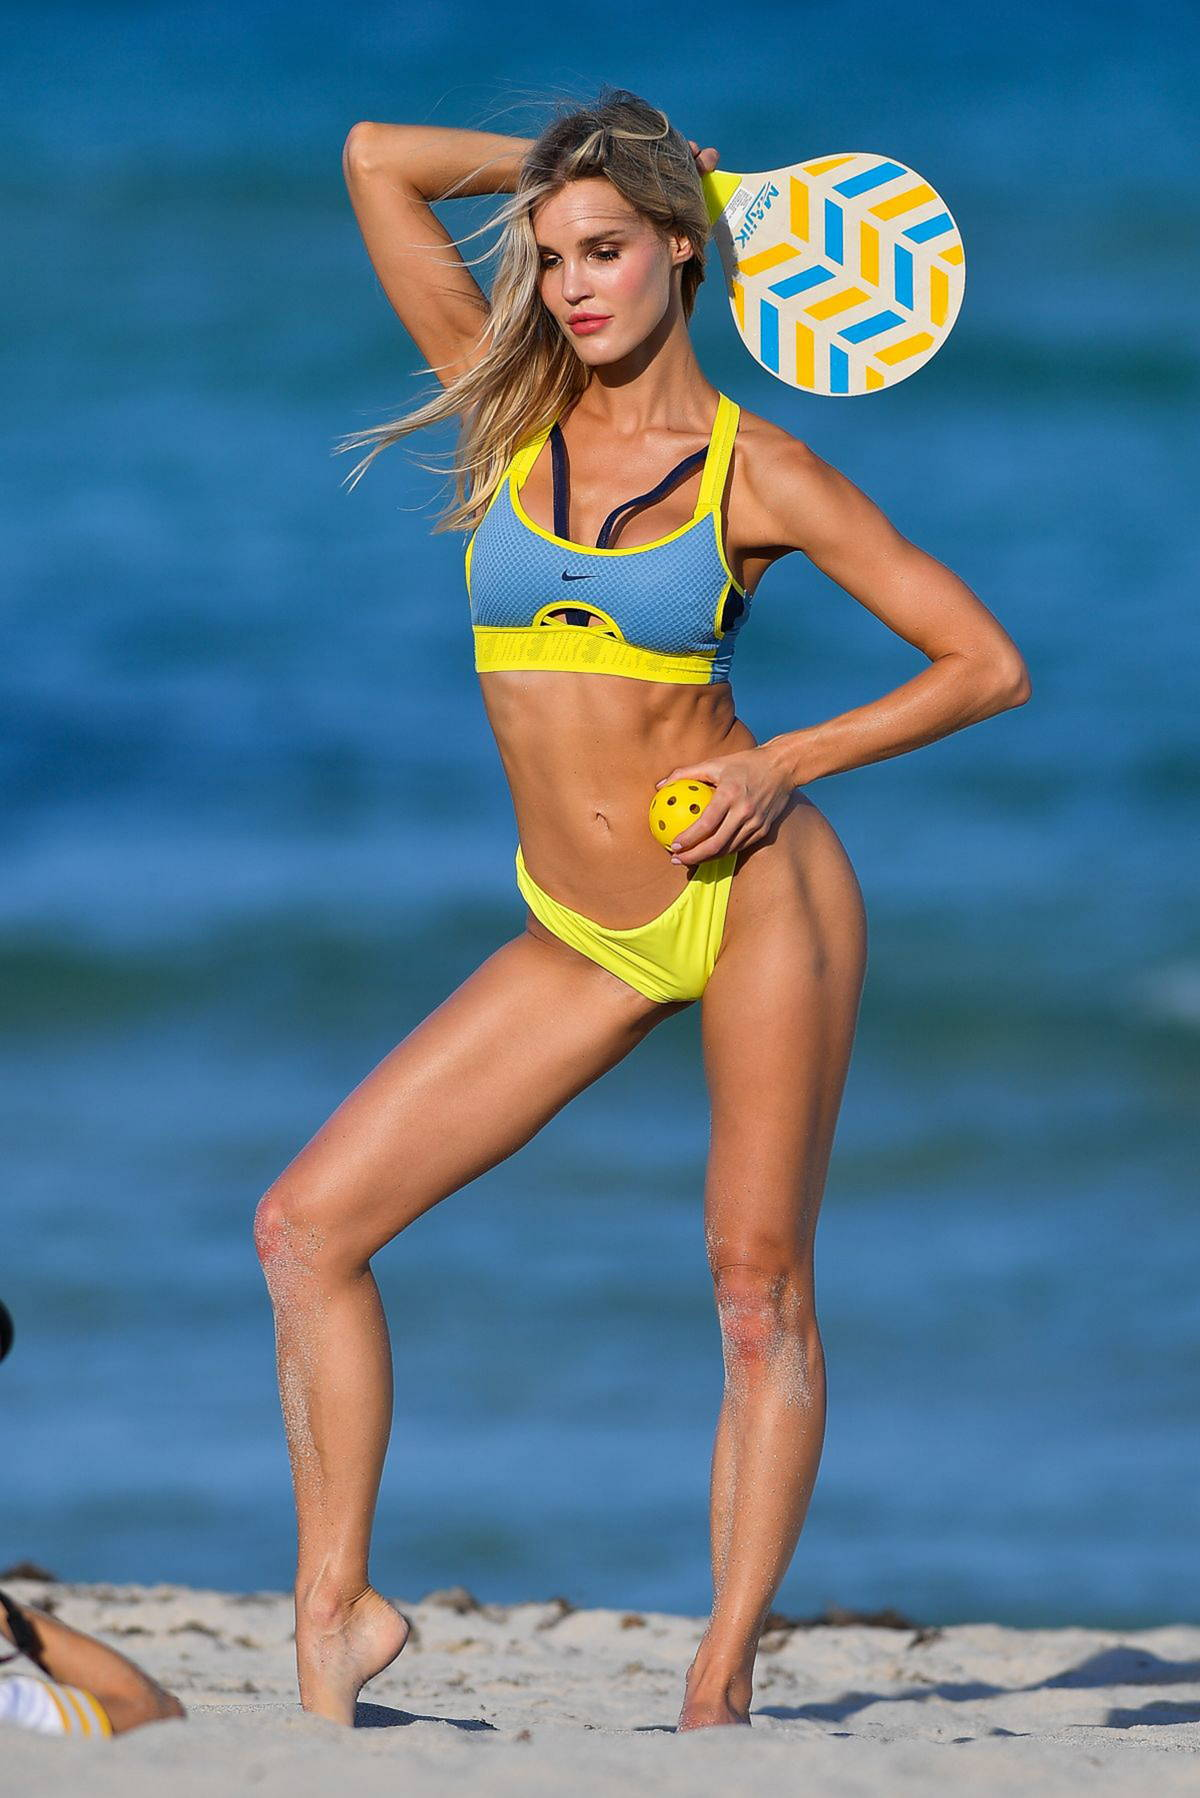 Joy Corrigan poses in a bright yellow and blue Nike bikini for a beach photoshoot in Miami Beach, Florida